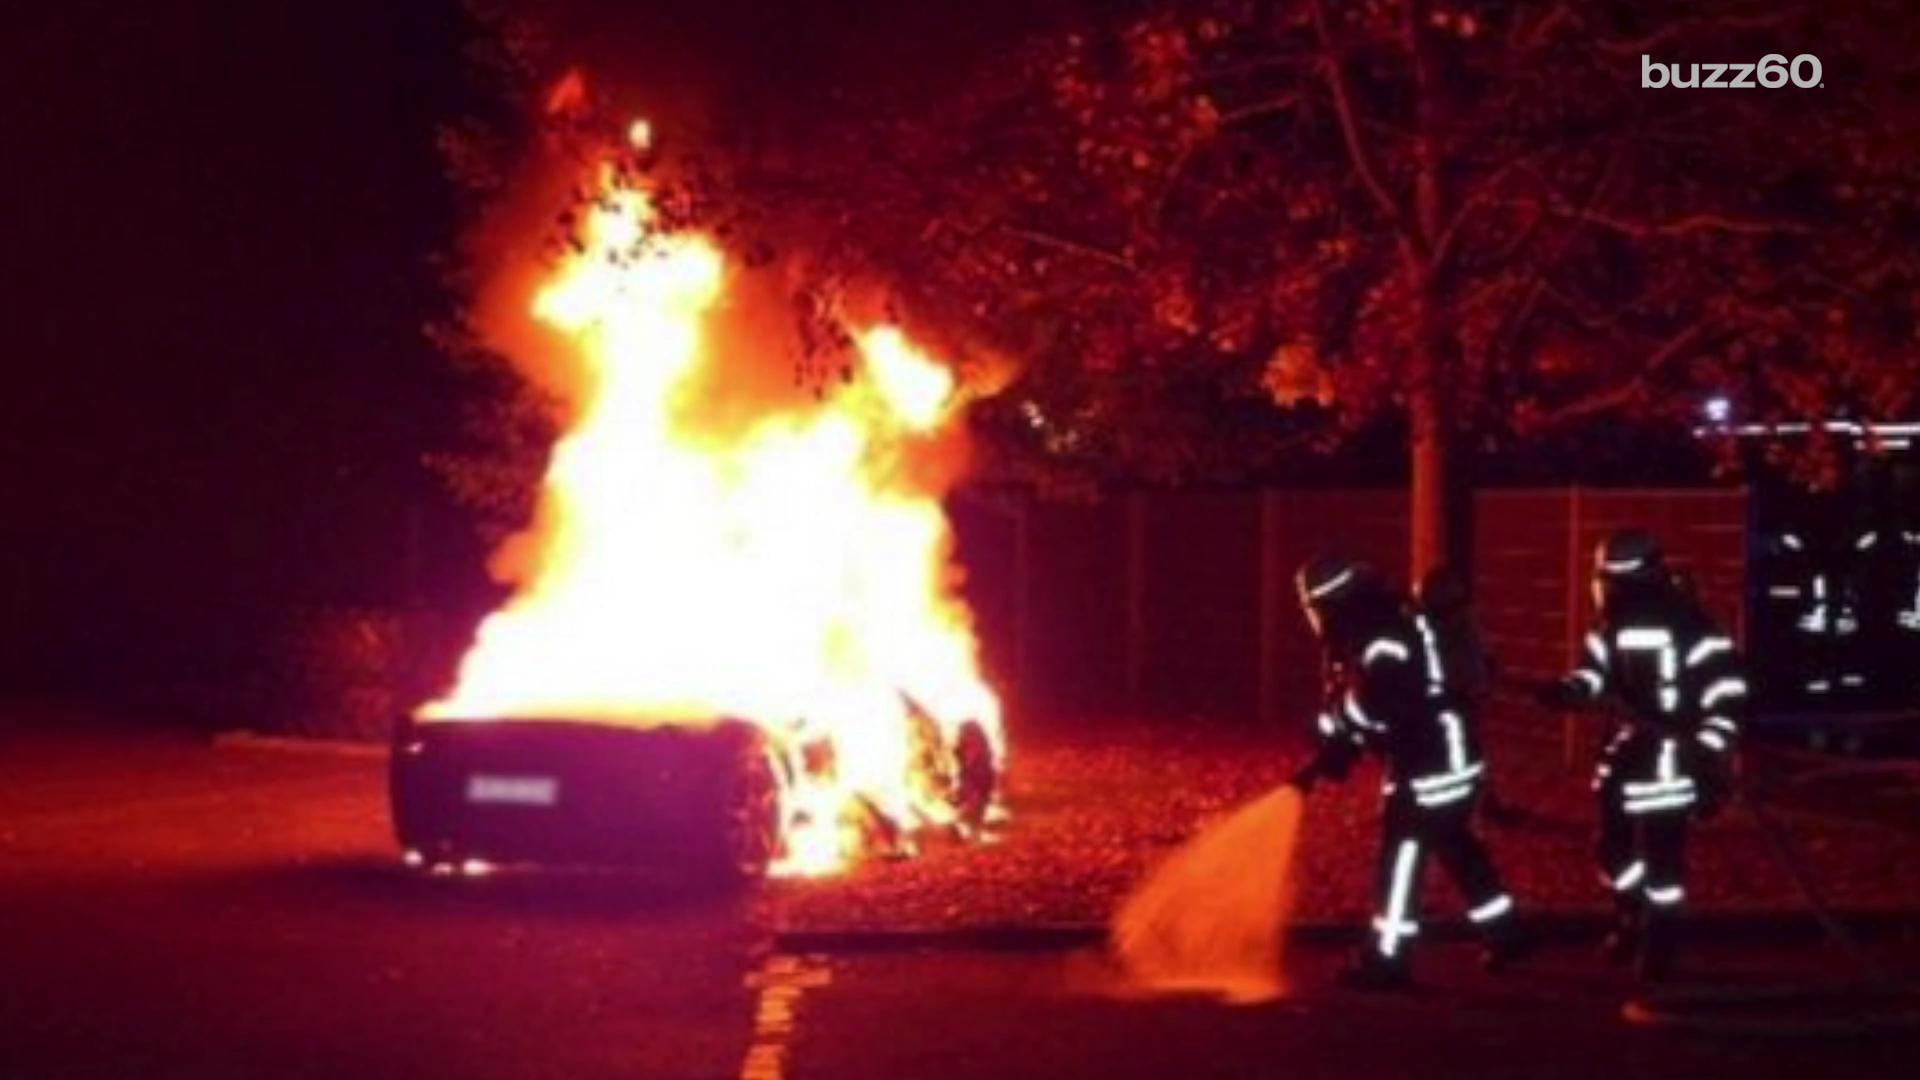 Spoiled kid burns his Ferrari so he can get a newer one